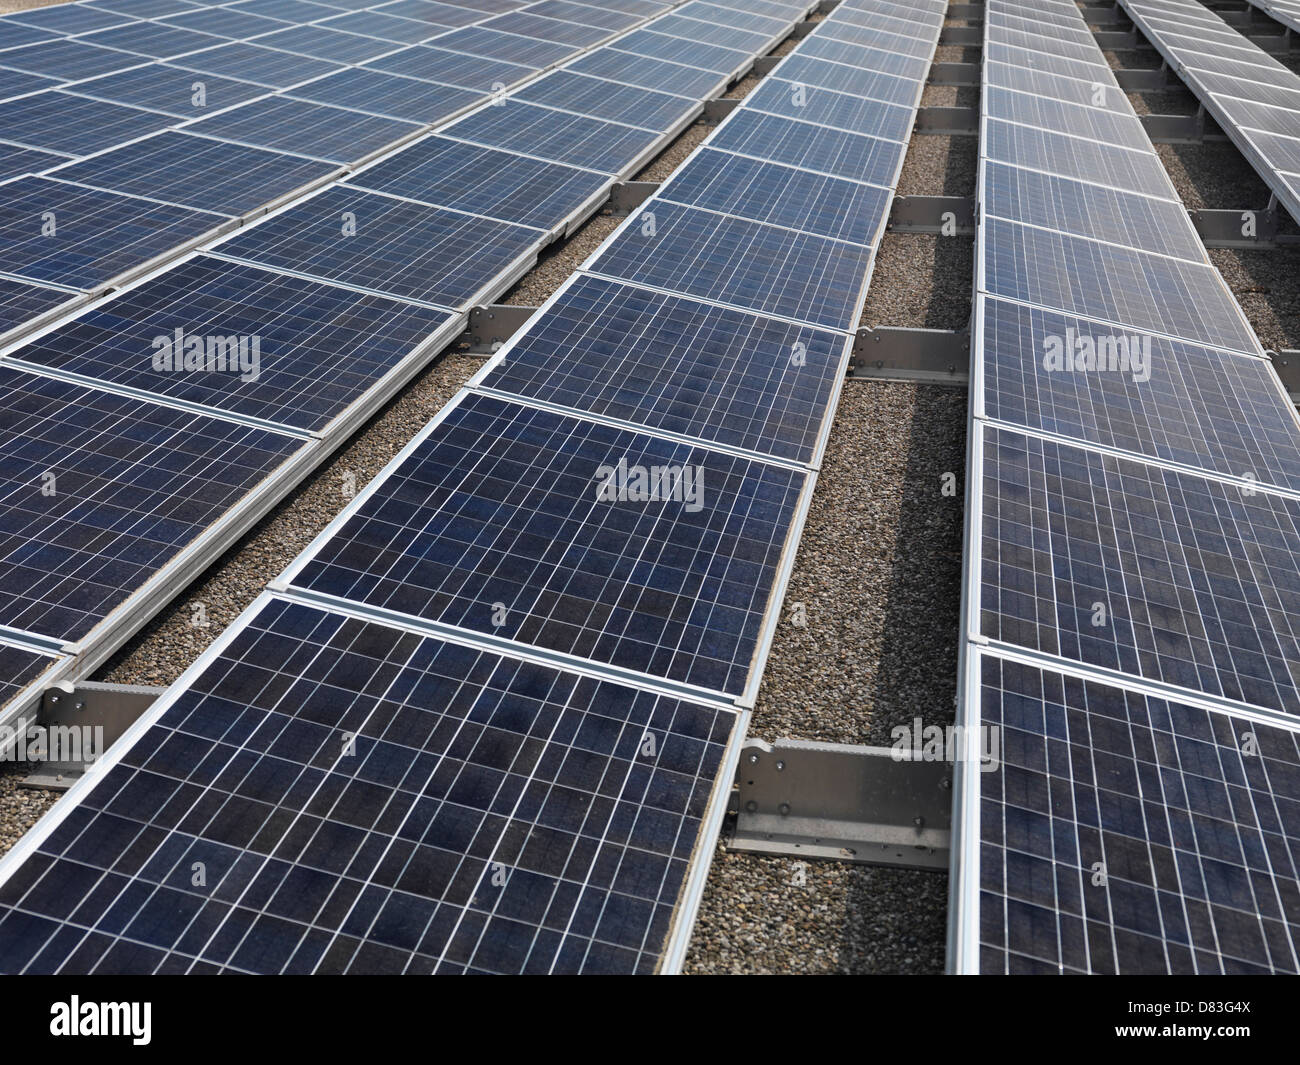 Solar panels on a roof of building - Stock Image